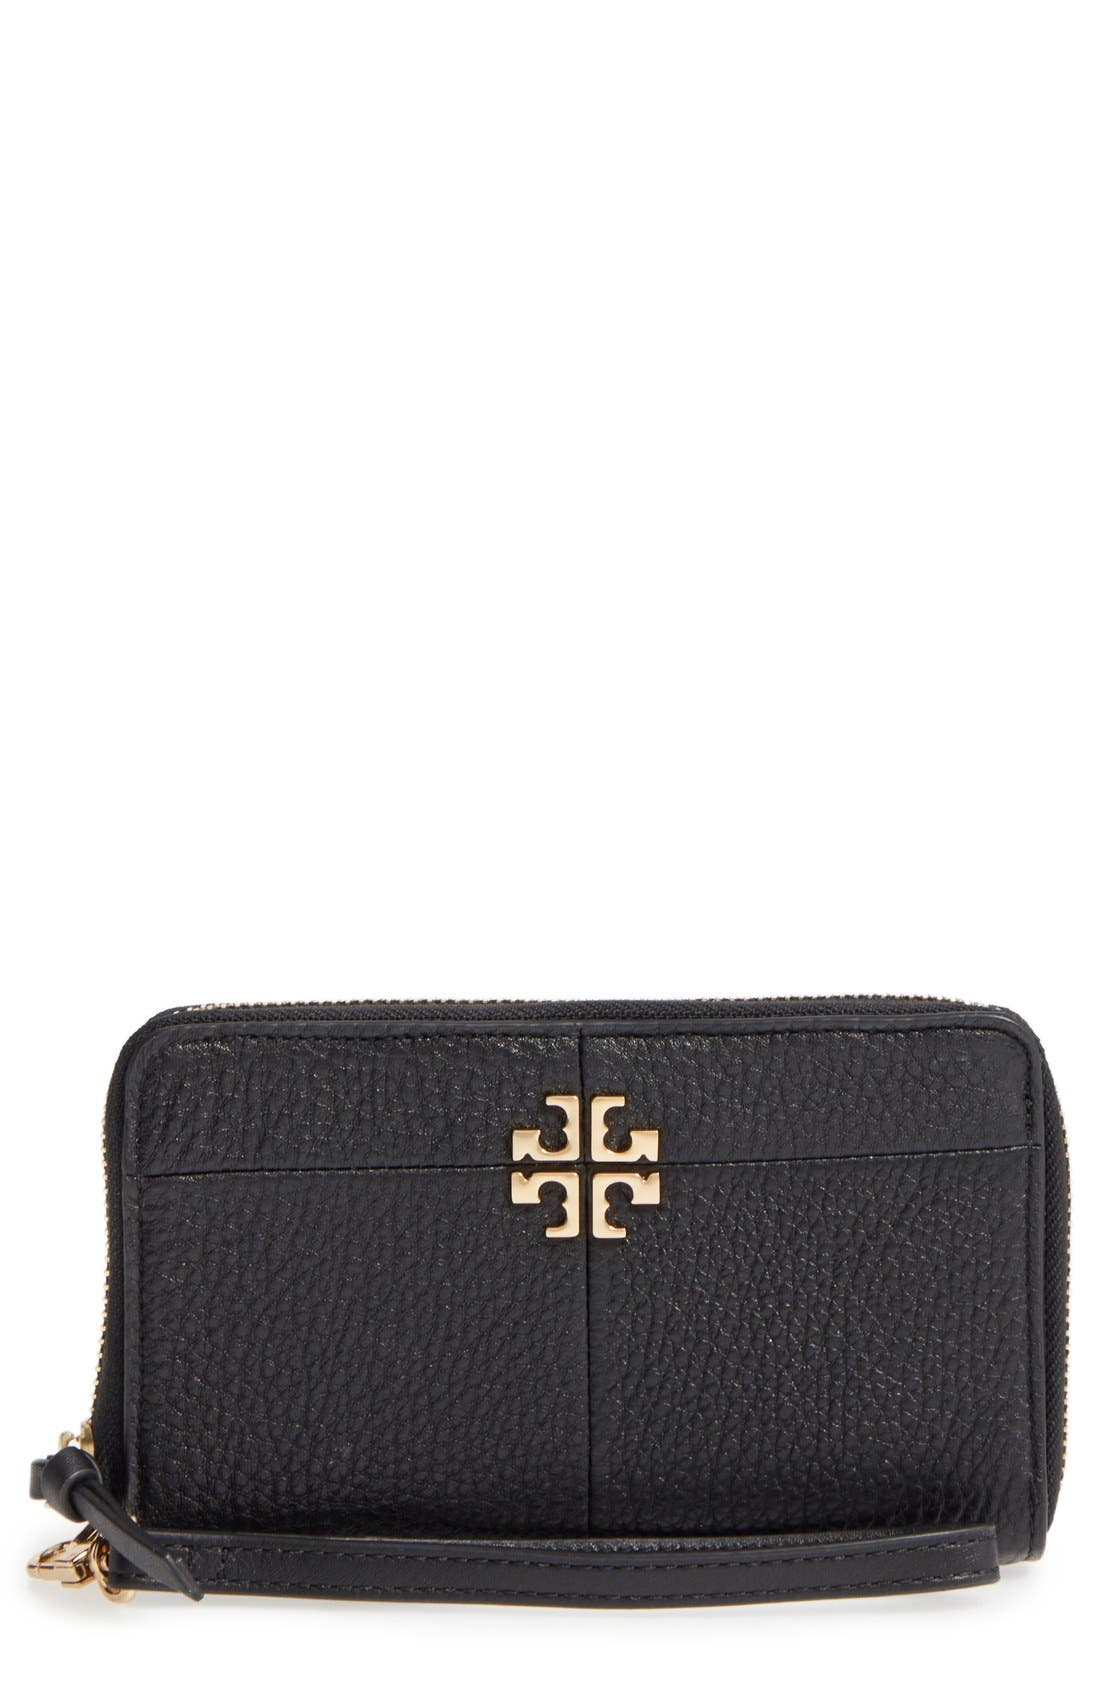 Main Image - Tory Burch Ivy Leather Smartphone Wristlet